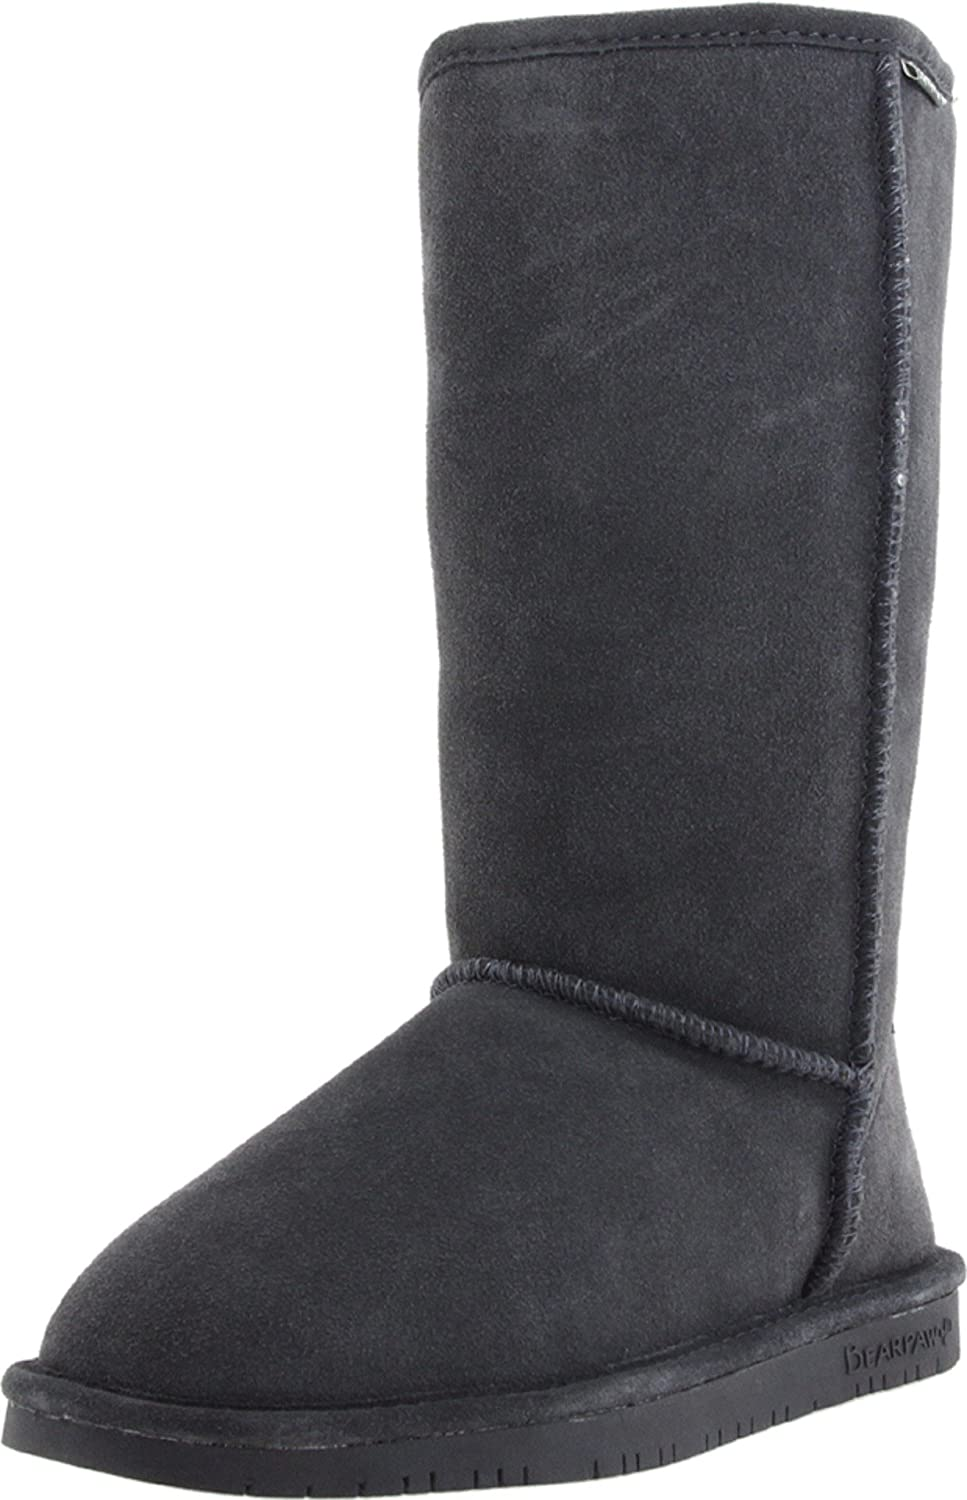 BEARPAW Women's Emma Tall Mid Calf Boot B00PWS2PSA 8 B(M) US|Charcoal